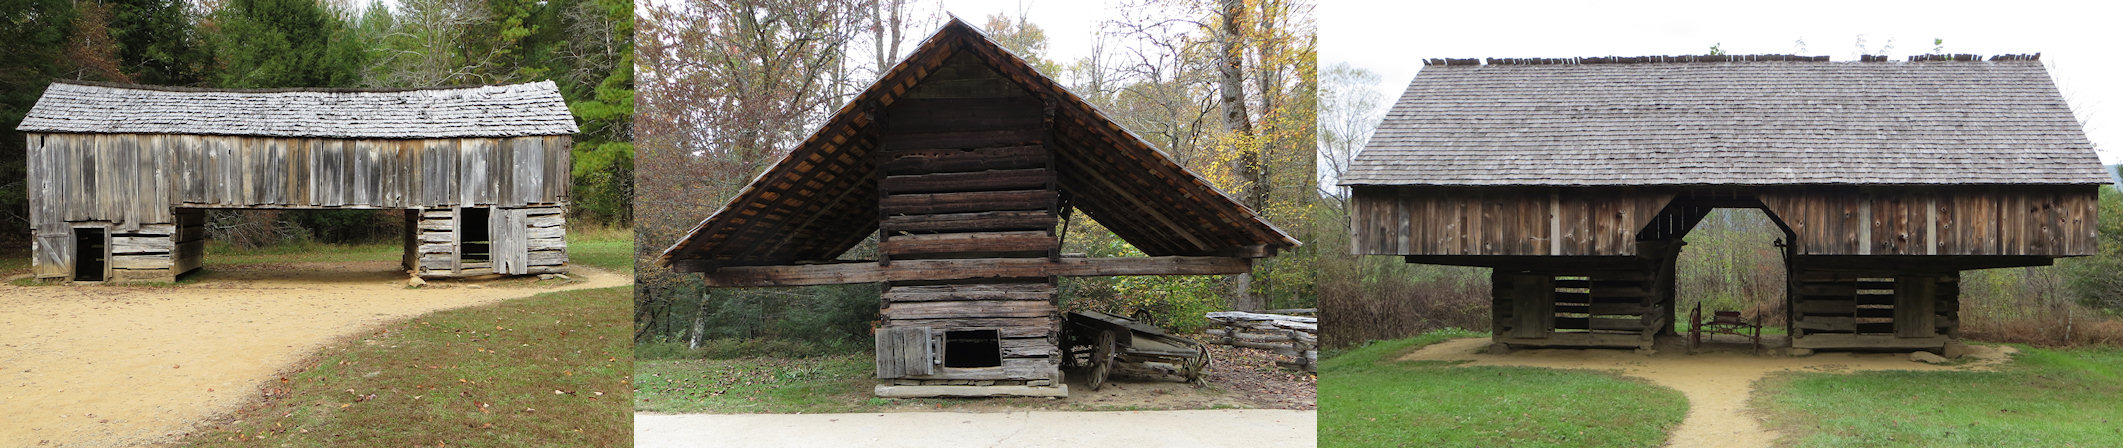 The settlers in Appalachia seemed to have some issue with building walls that came all the way to the ground.